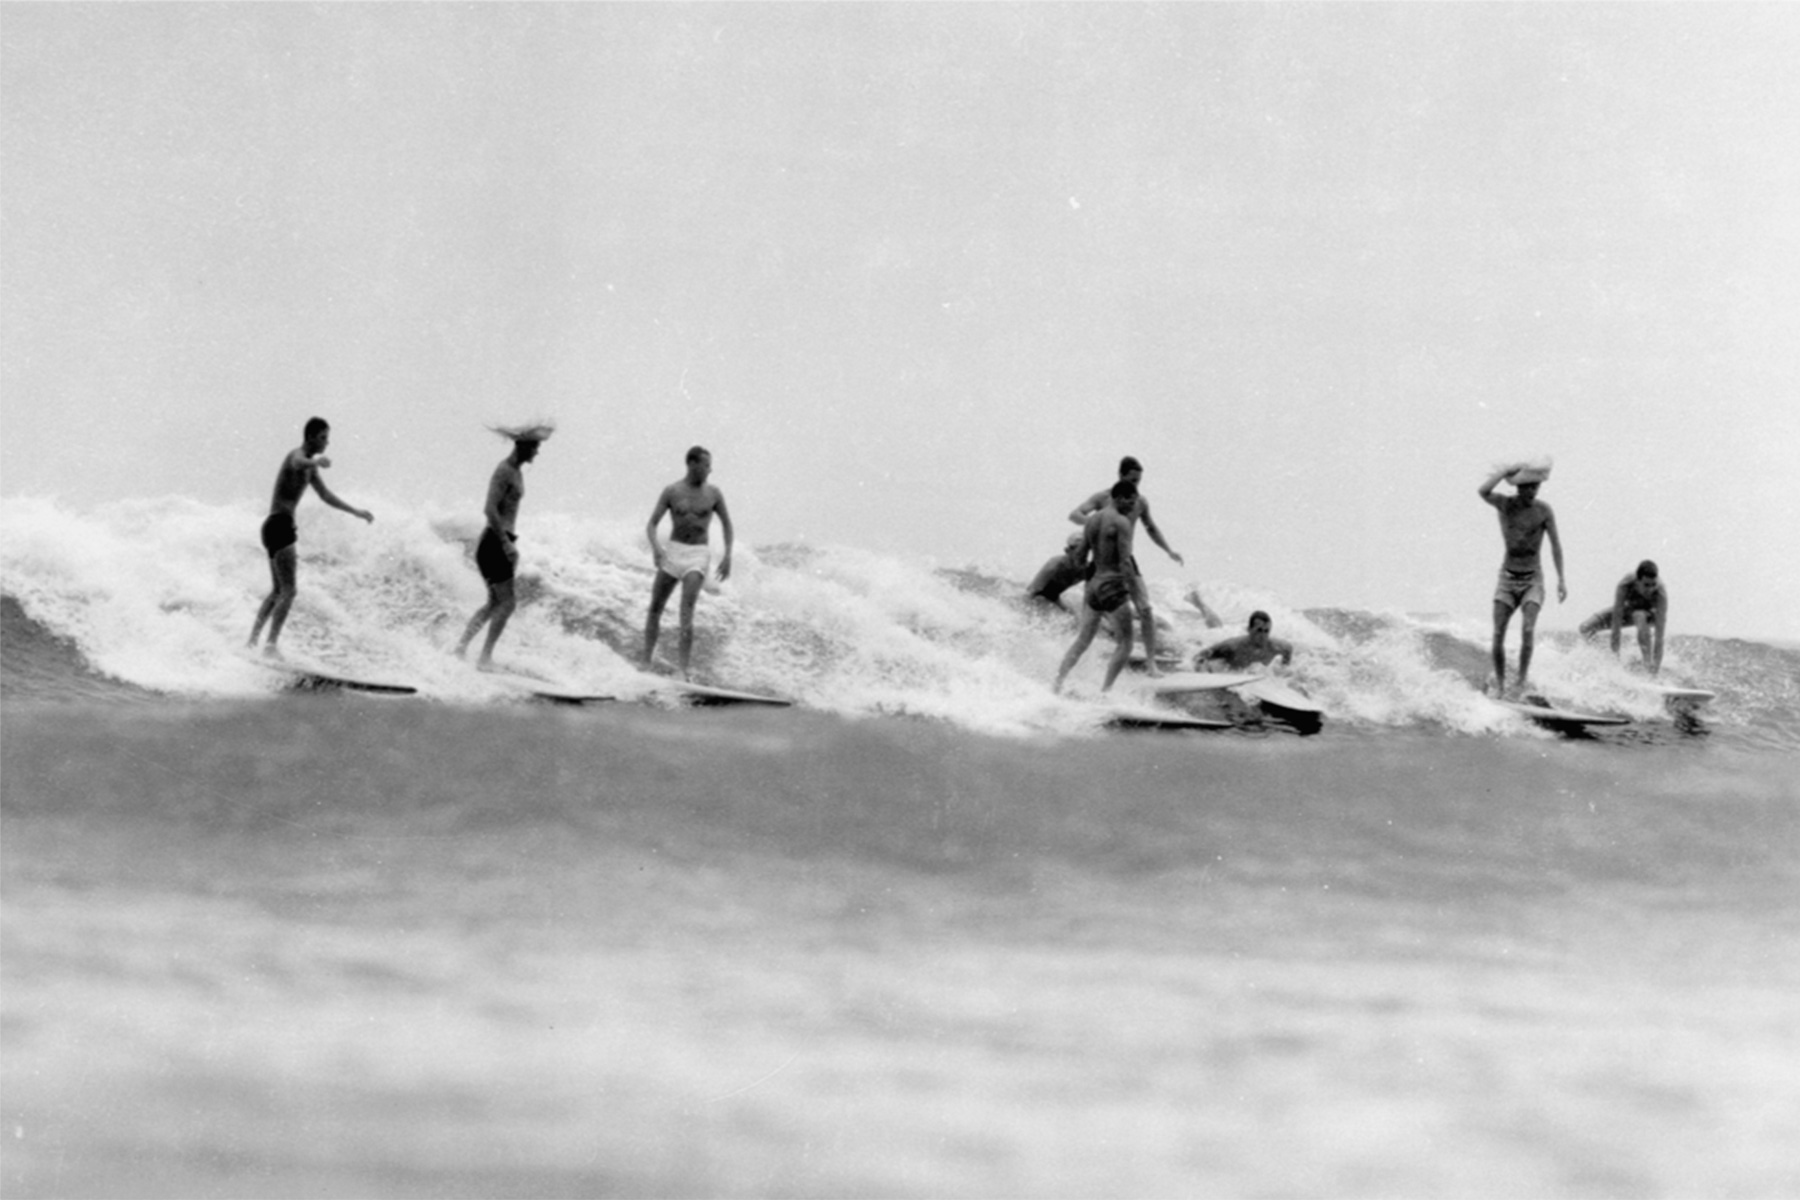 surfers at yallingup, western australia, in the 1960s